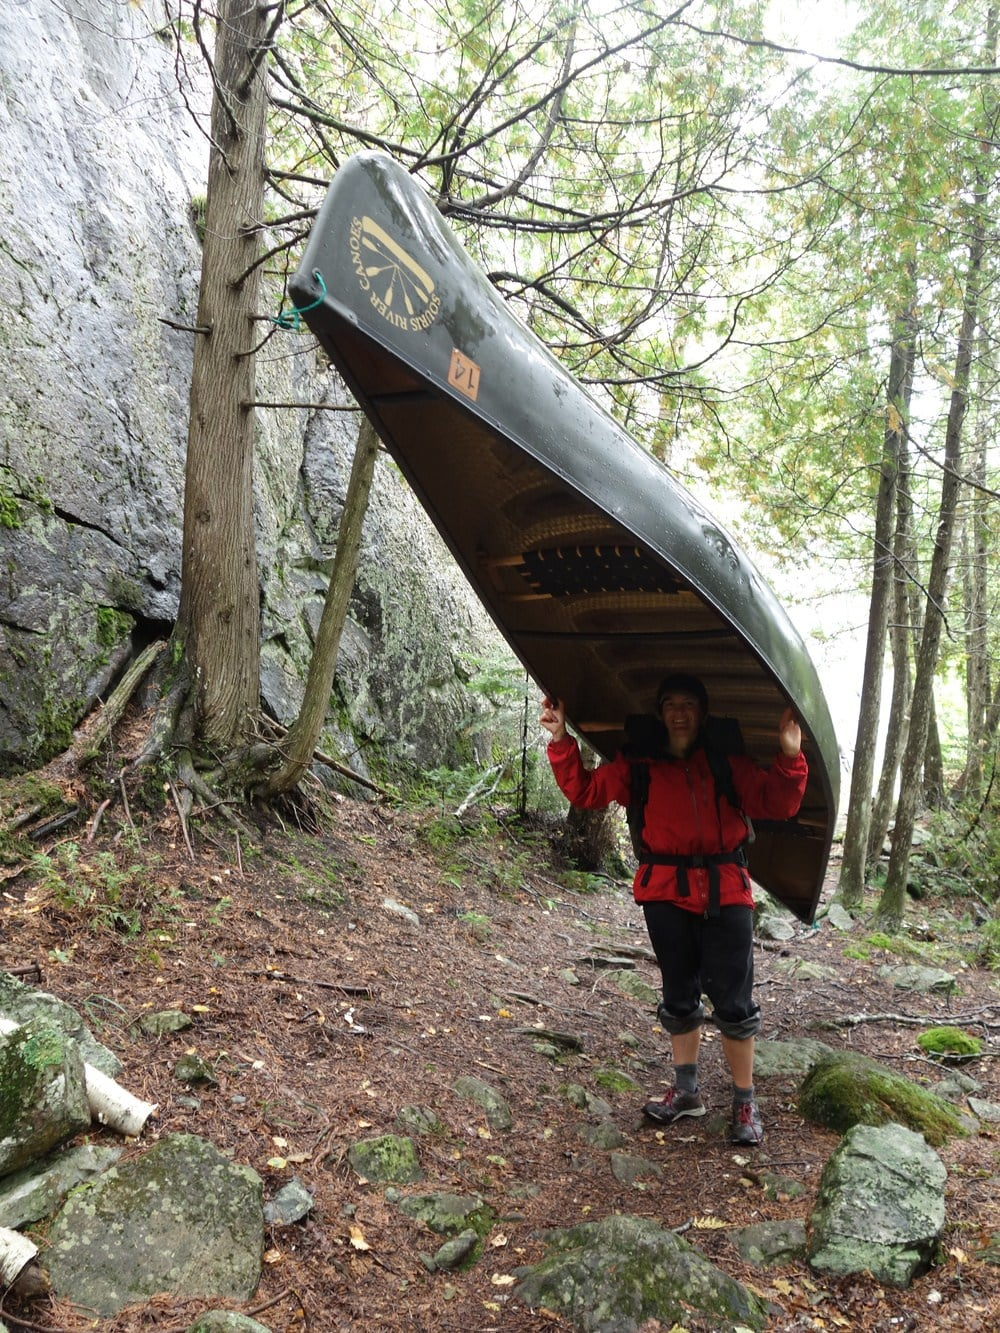 I took a trip to the Boundary Waters in MN to practice canoeing and learn to portage.